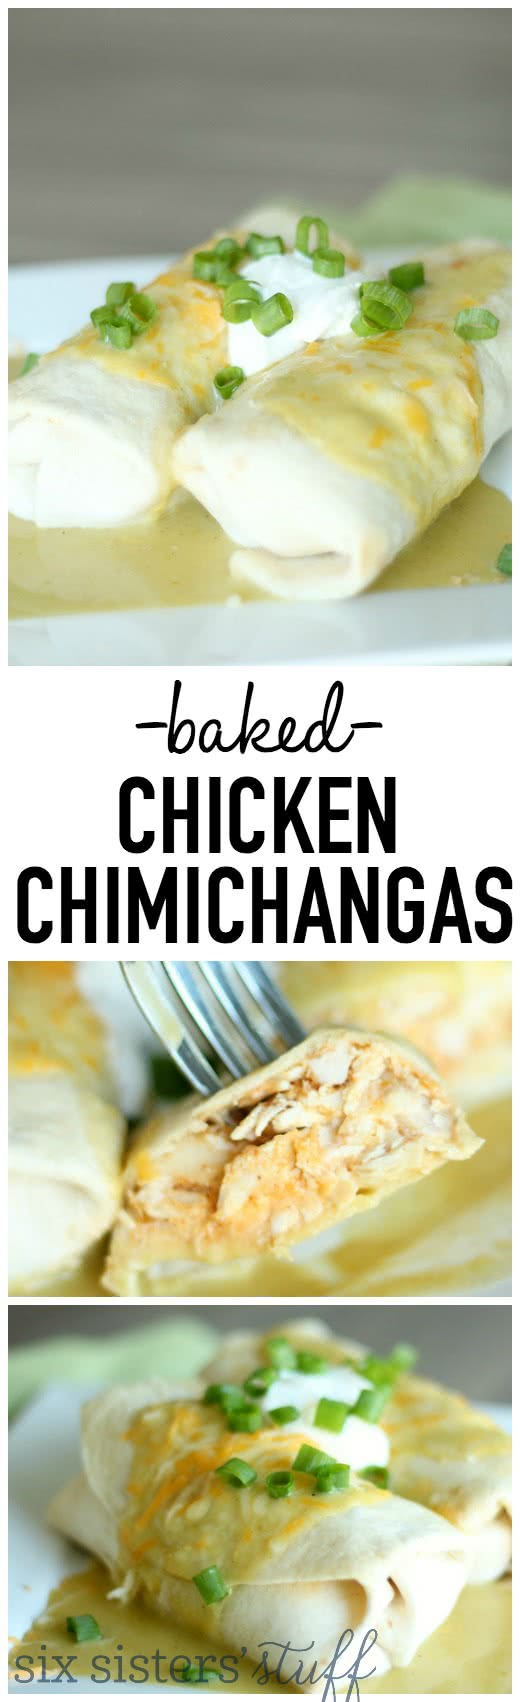 Baked Chicken Chimichangas with Green Sauce from SixSistersStuff.com